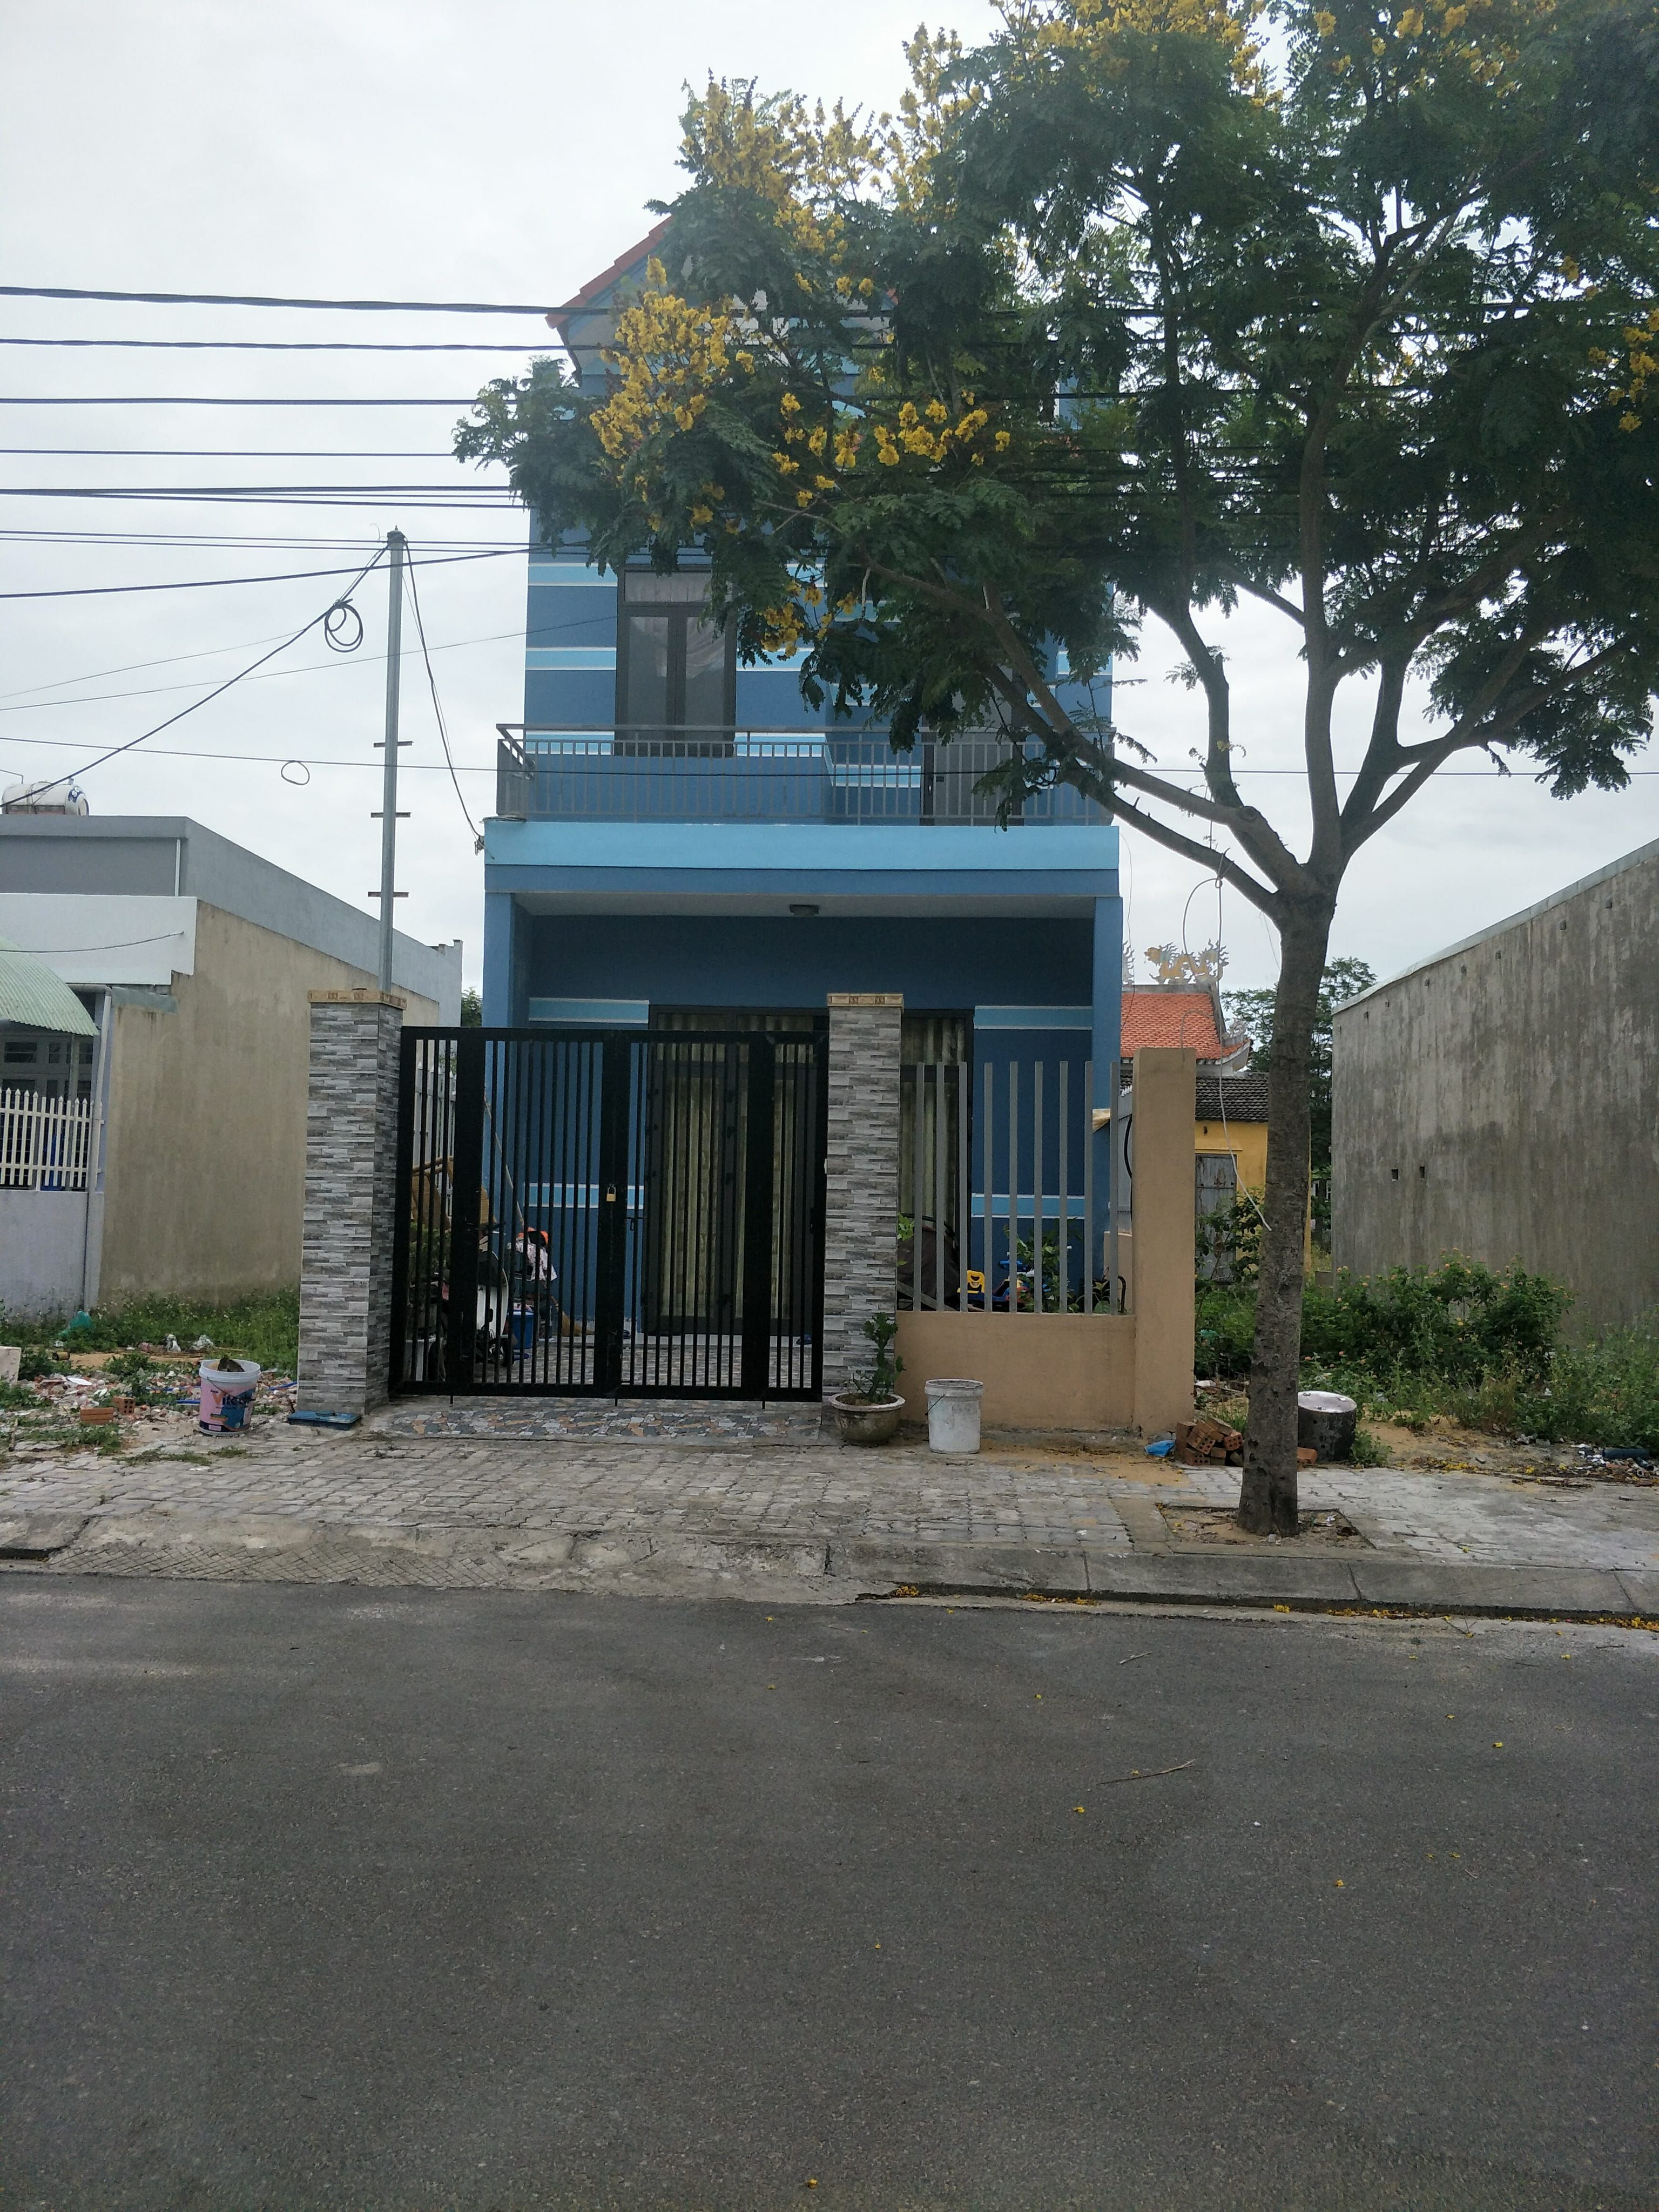 Support Community Center in Vietnam Mission (With images